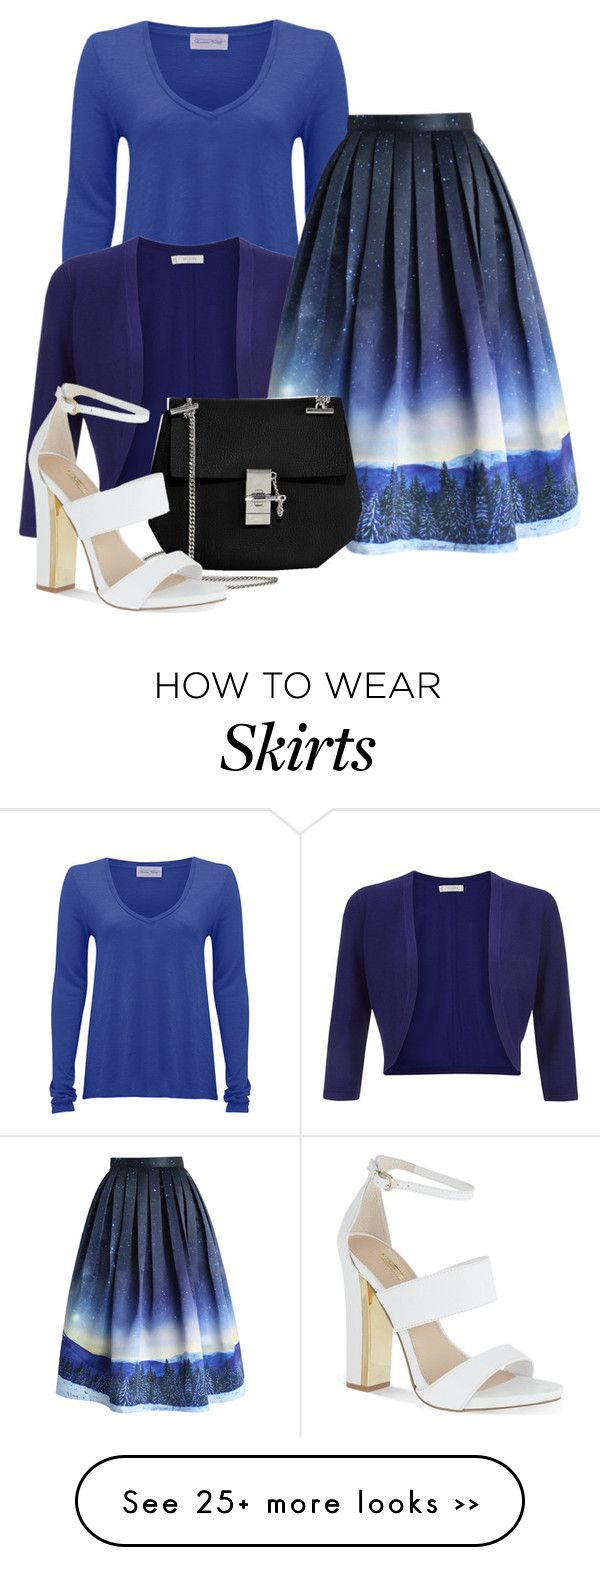 """Night Sky: Statement Skirt 2"" by gummybear178 on Polyvore"